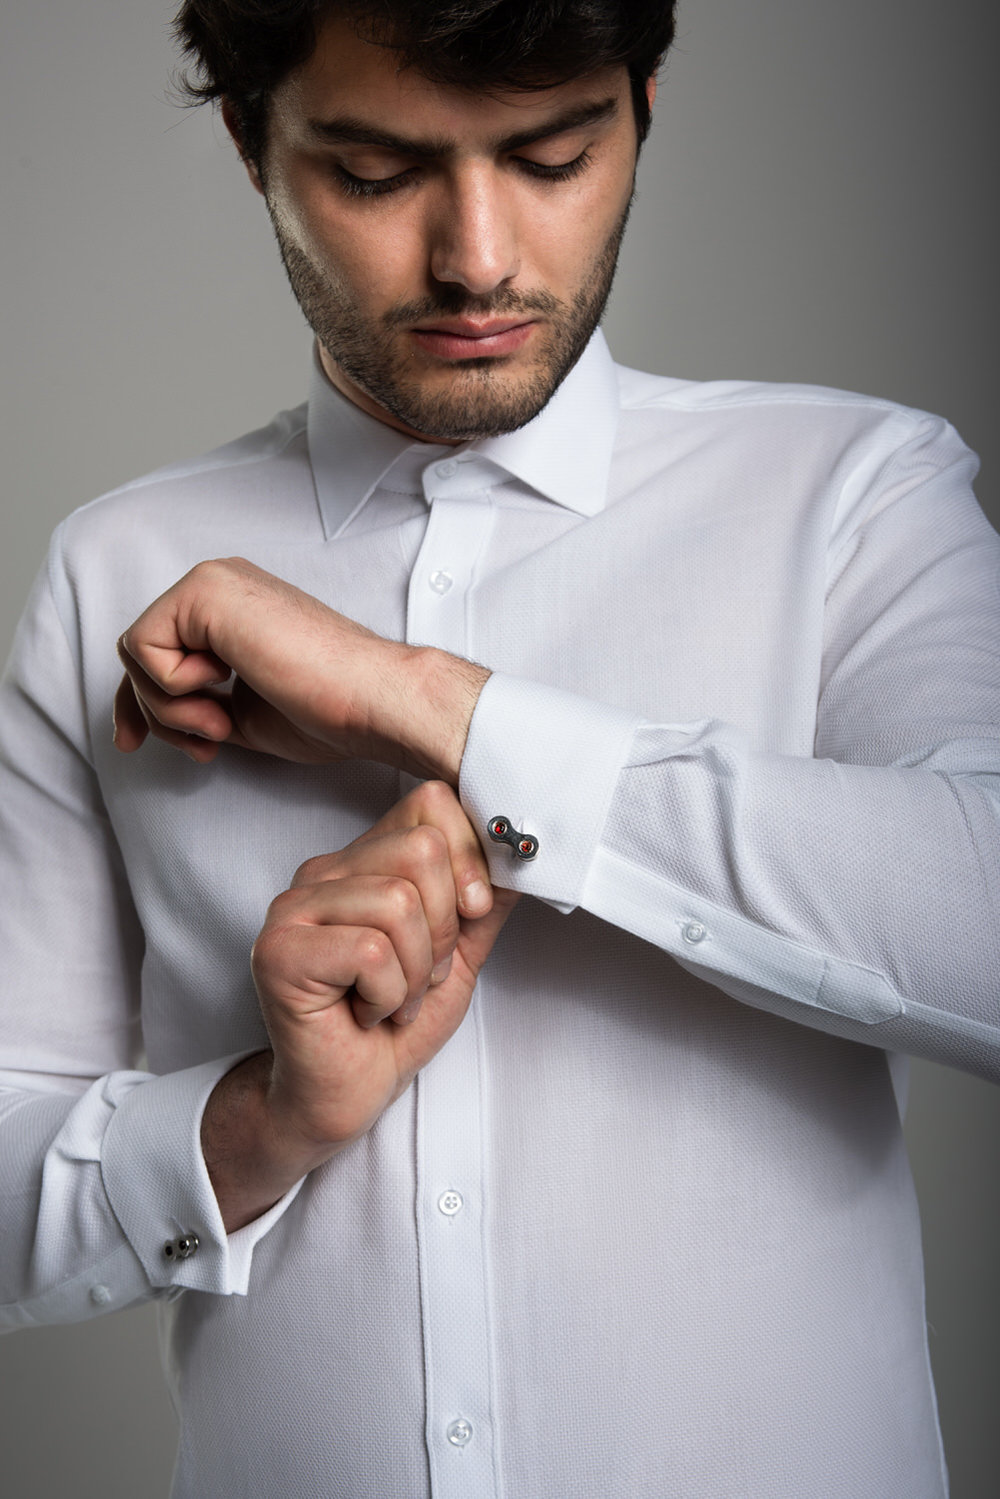 A mens cufflink shirt. Notice the structured collar and clean lines.